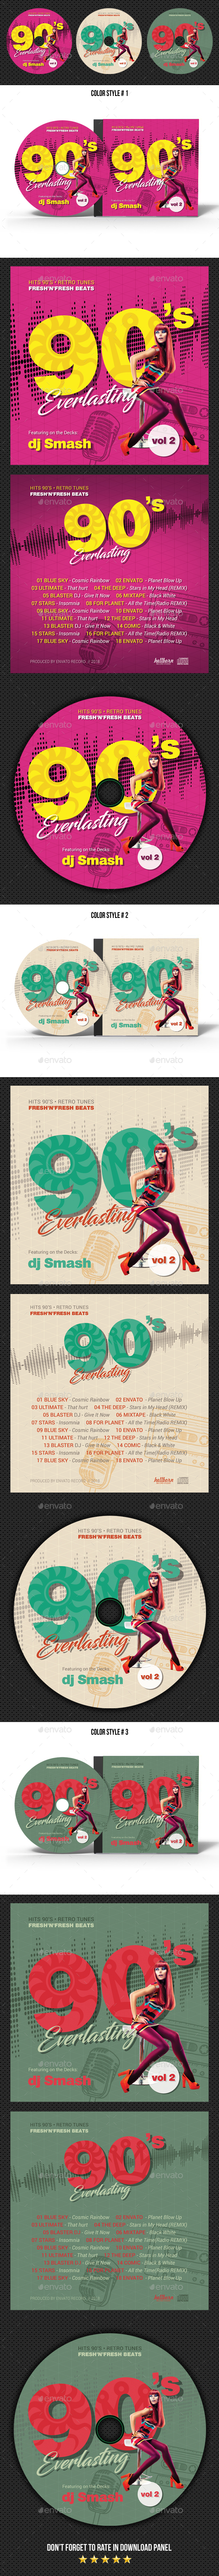 90s Everlasting CD Cover - CD & DVD Artwork Print Templates